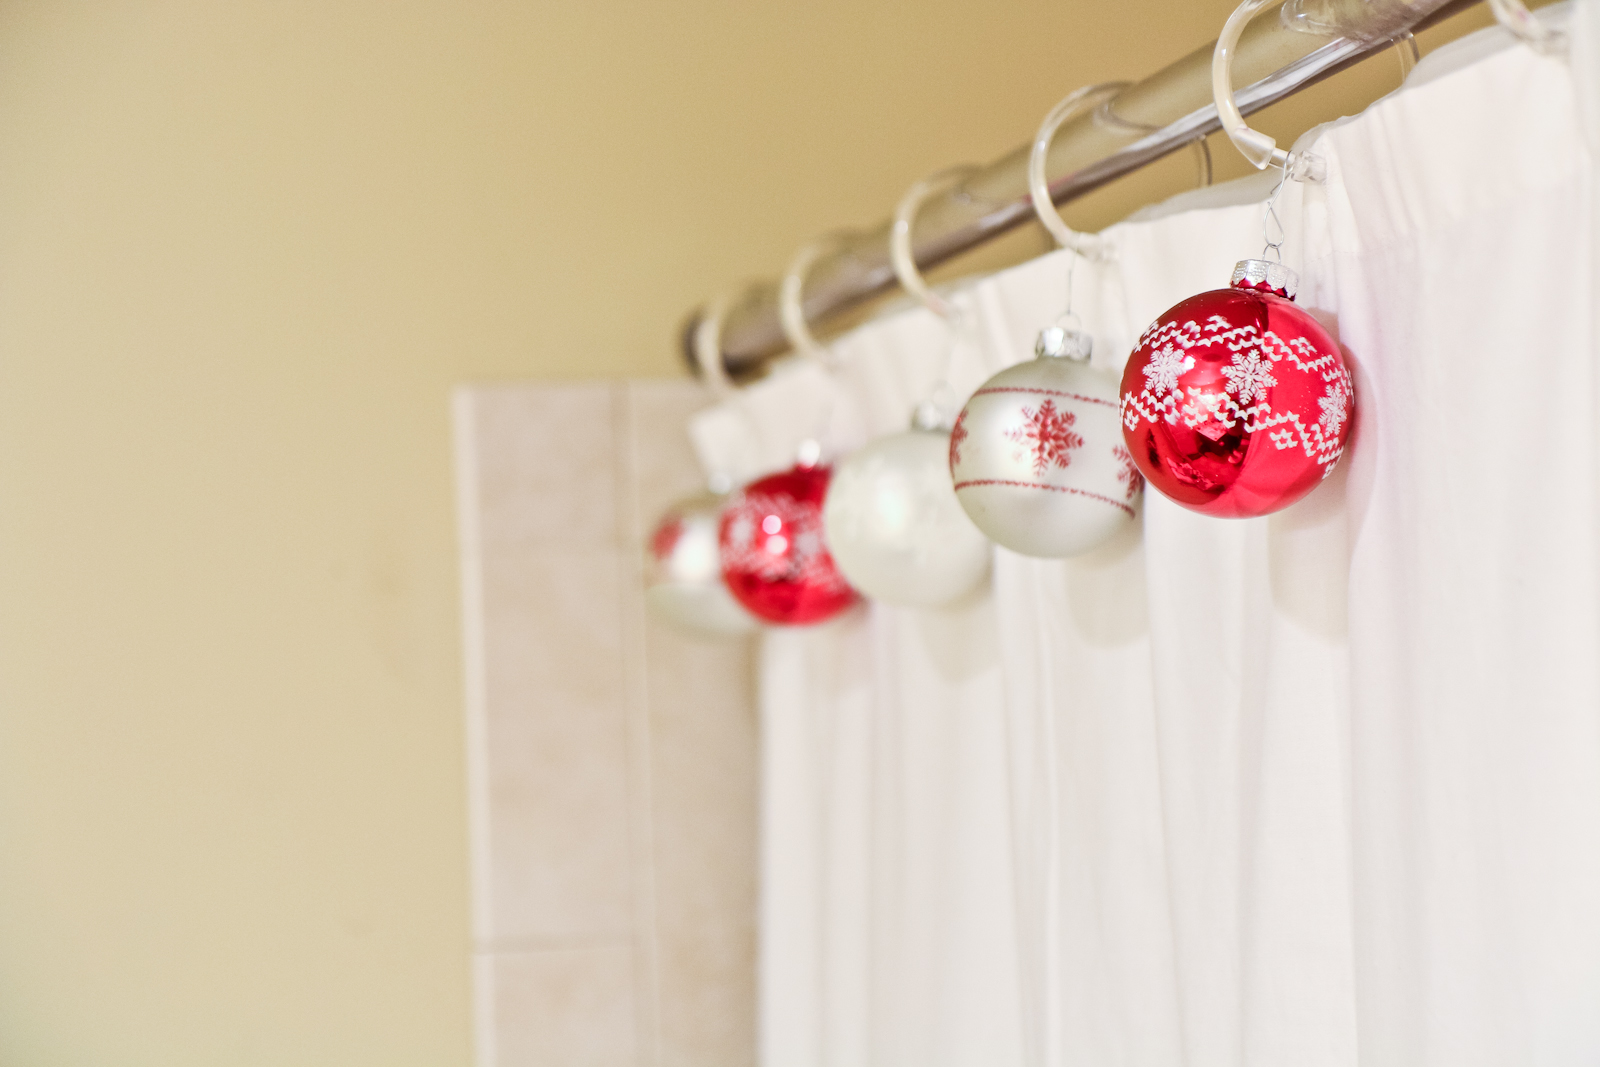 Shower curtain ornaments